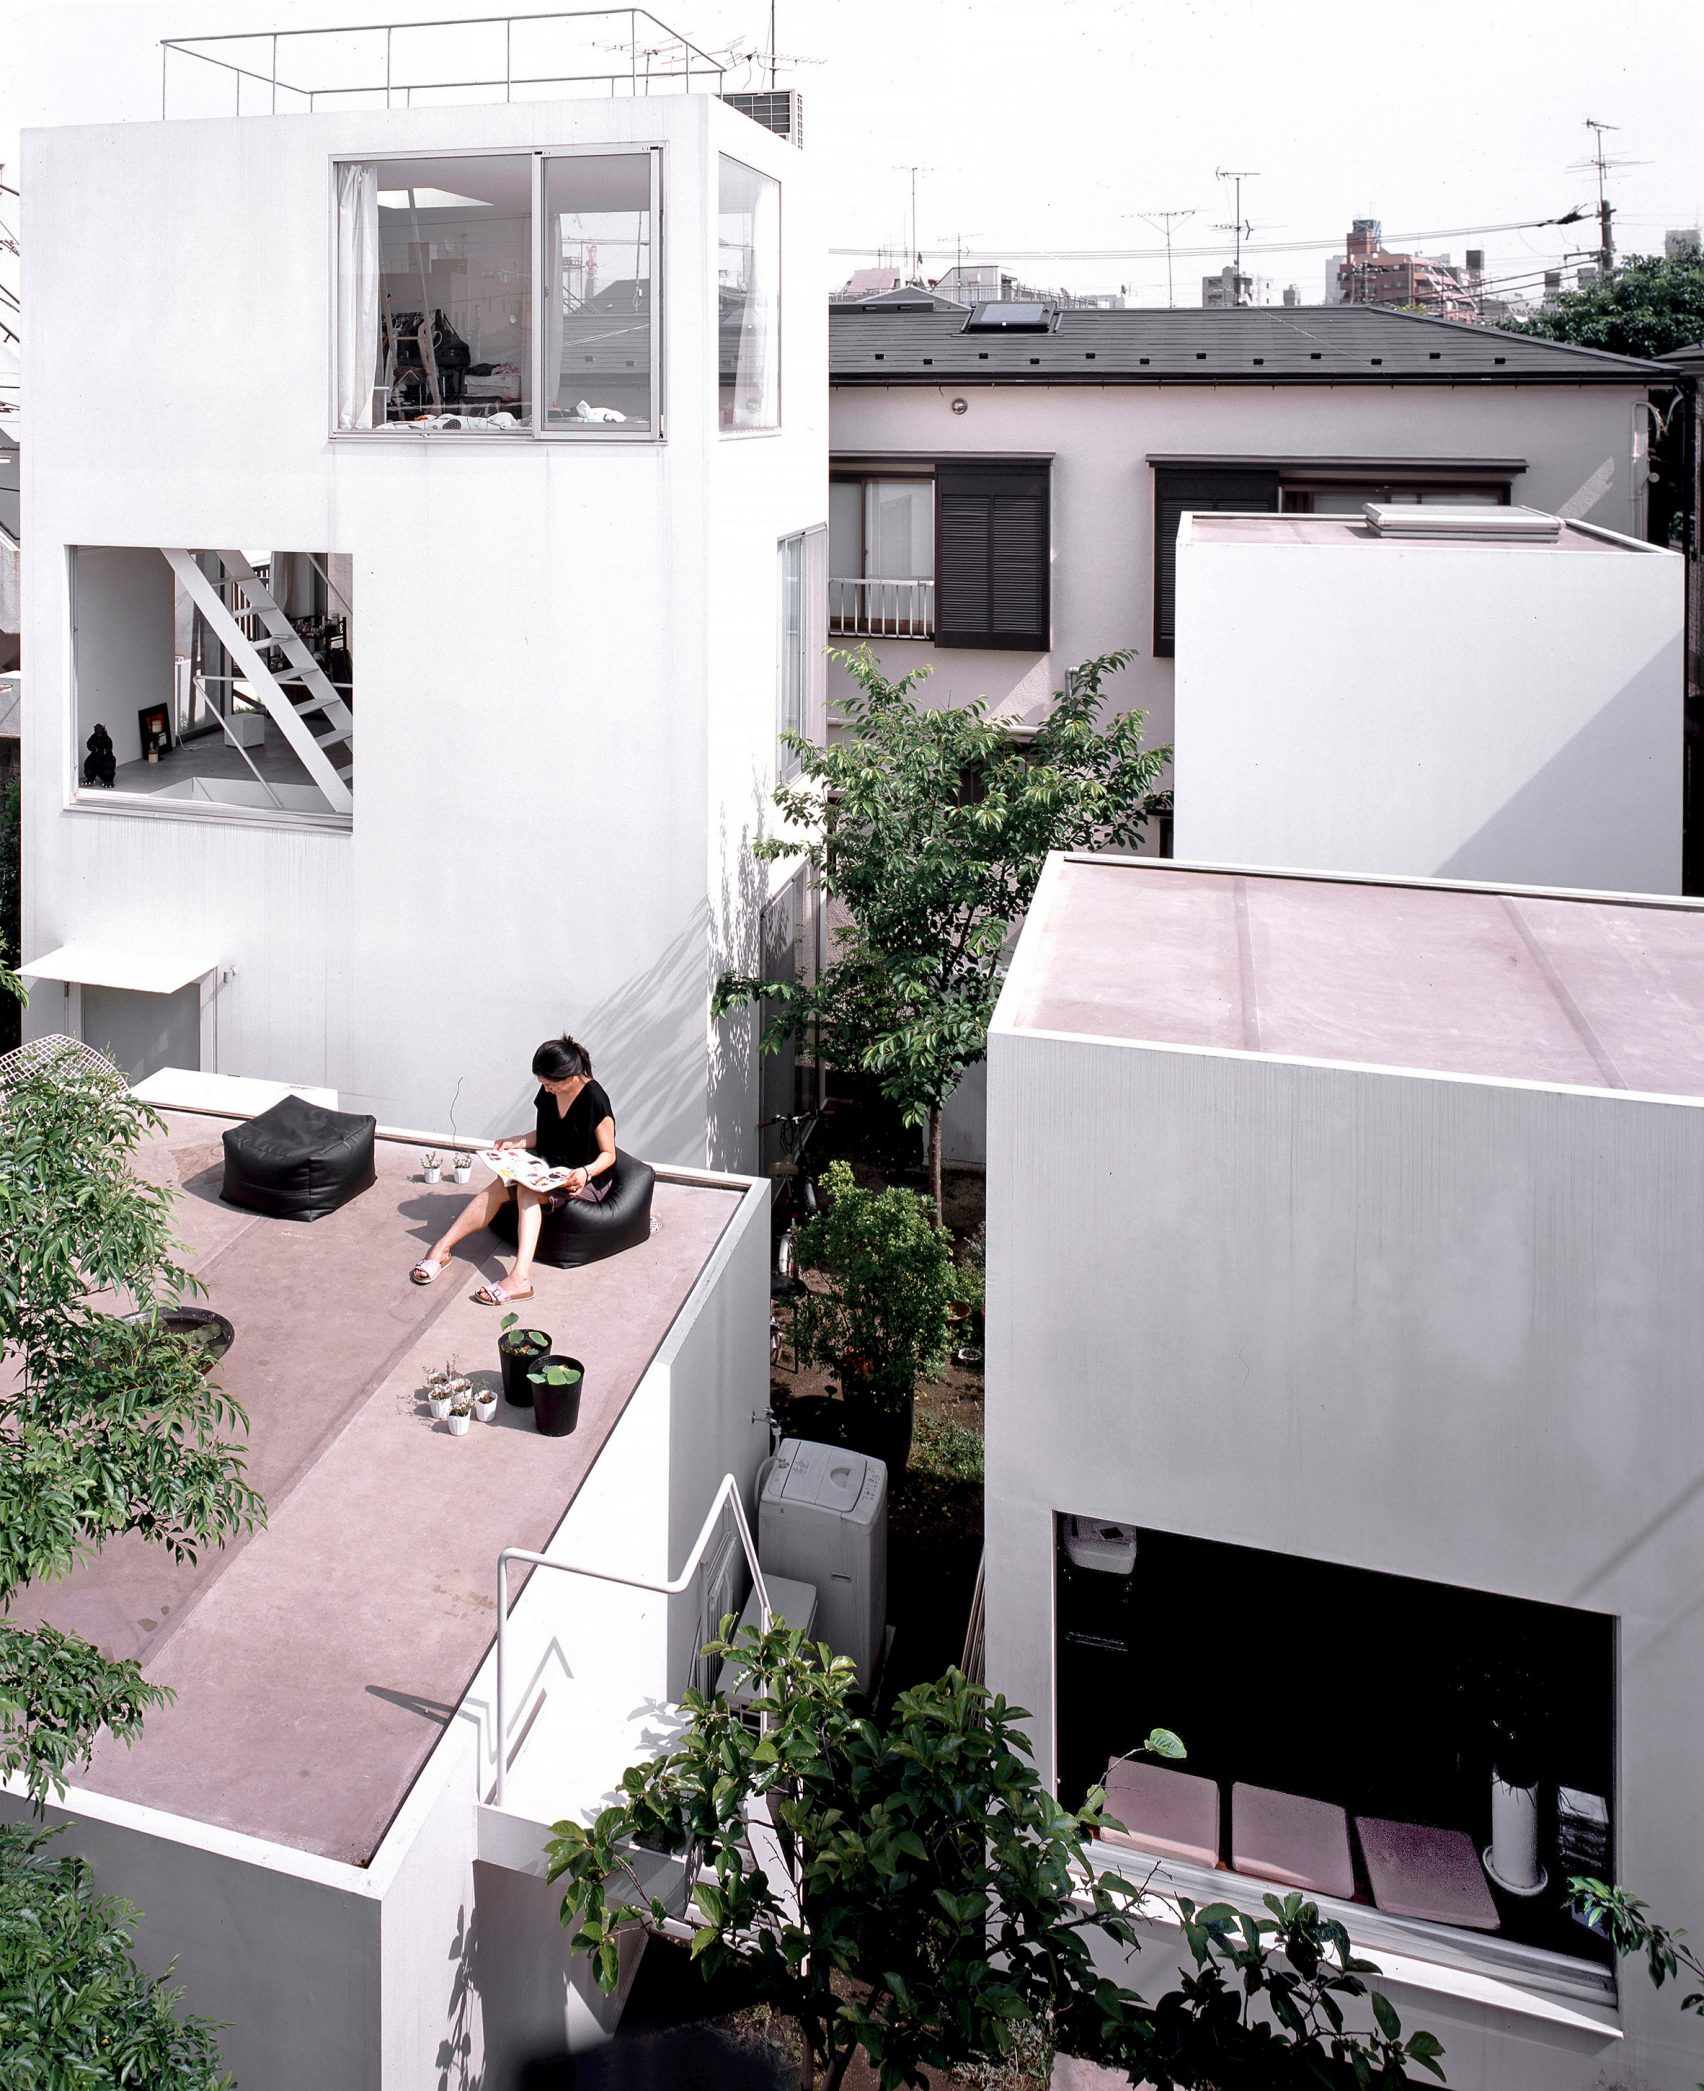 moriyama-house-photos-edmund-sumner-architecture-photography-residential-japan_dezeen_2364_col_12-1704x2091